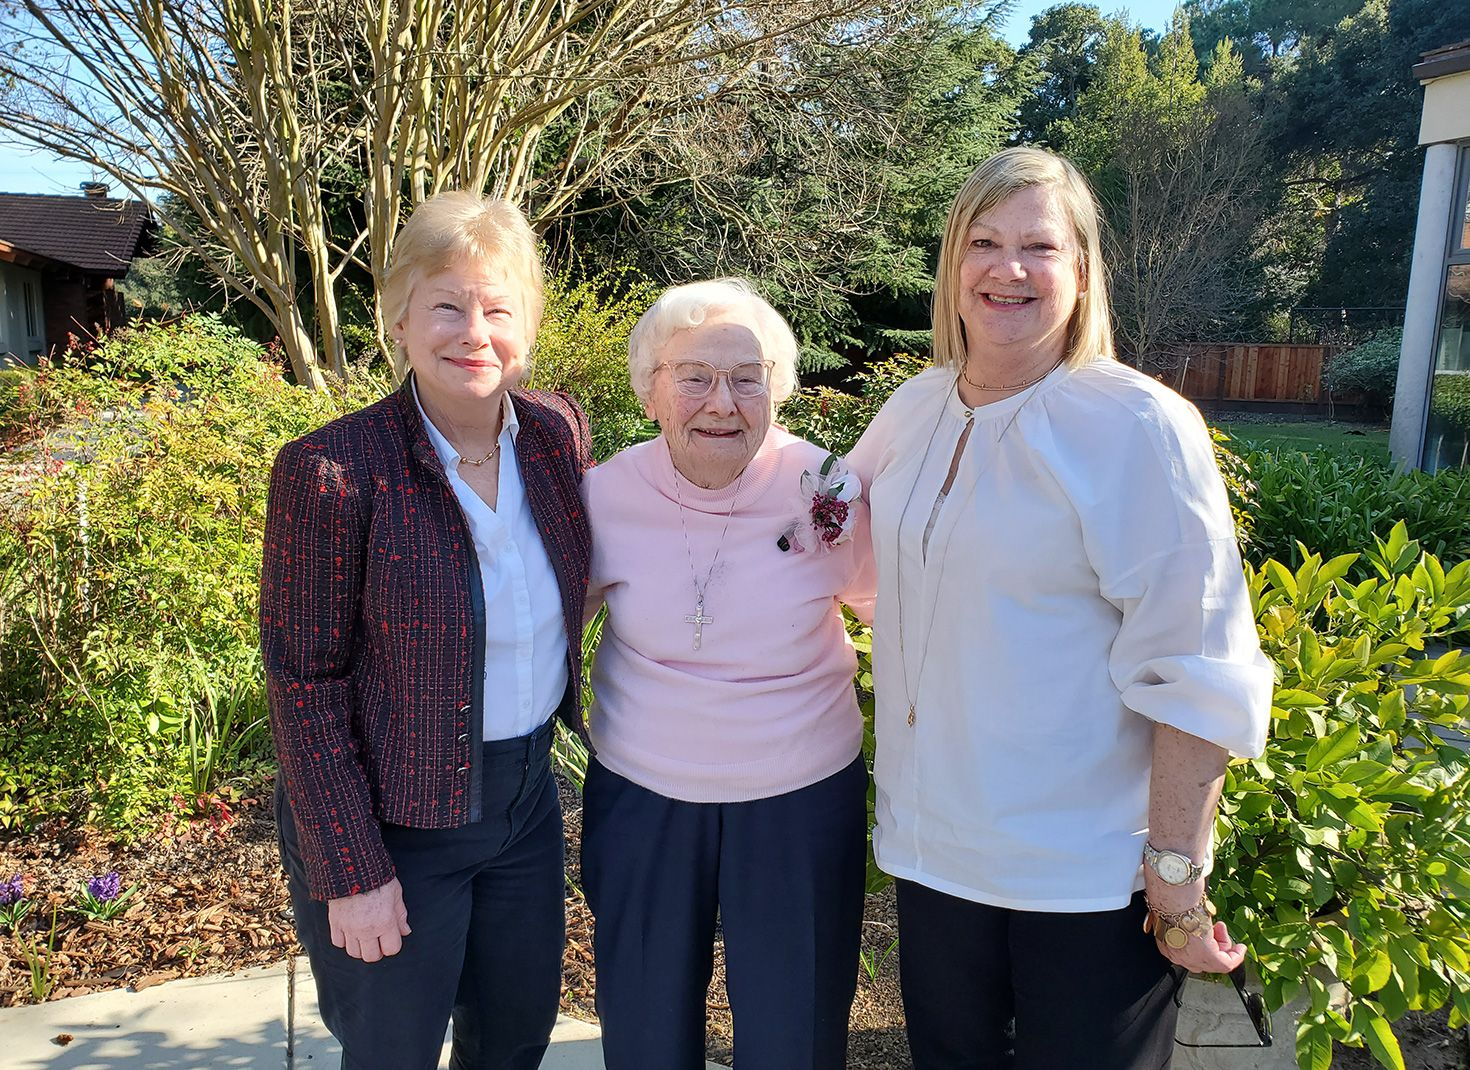 Friends visit Sr. Lil Conaghan for her birthday